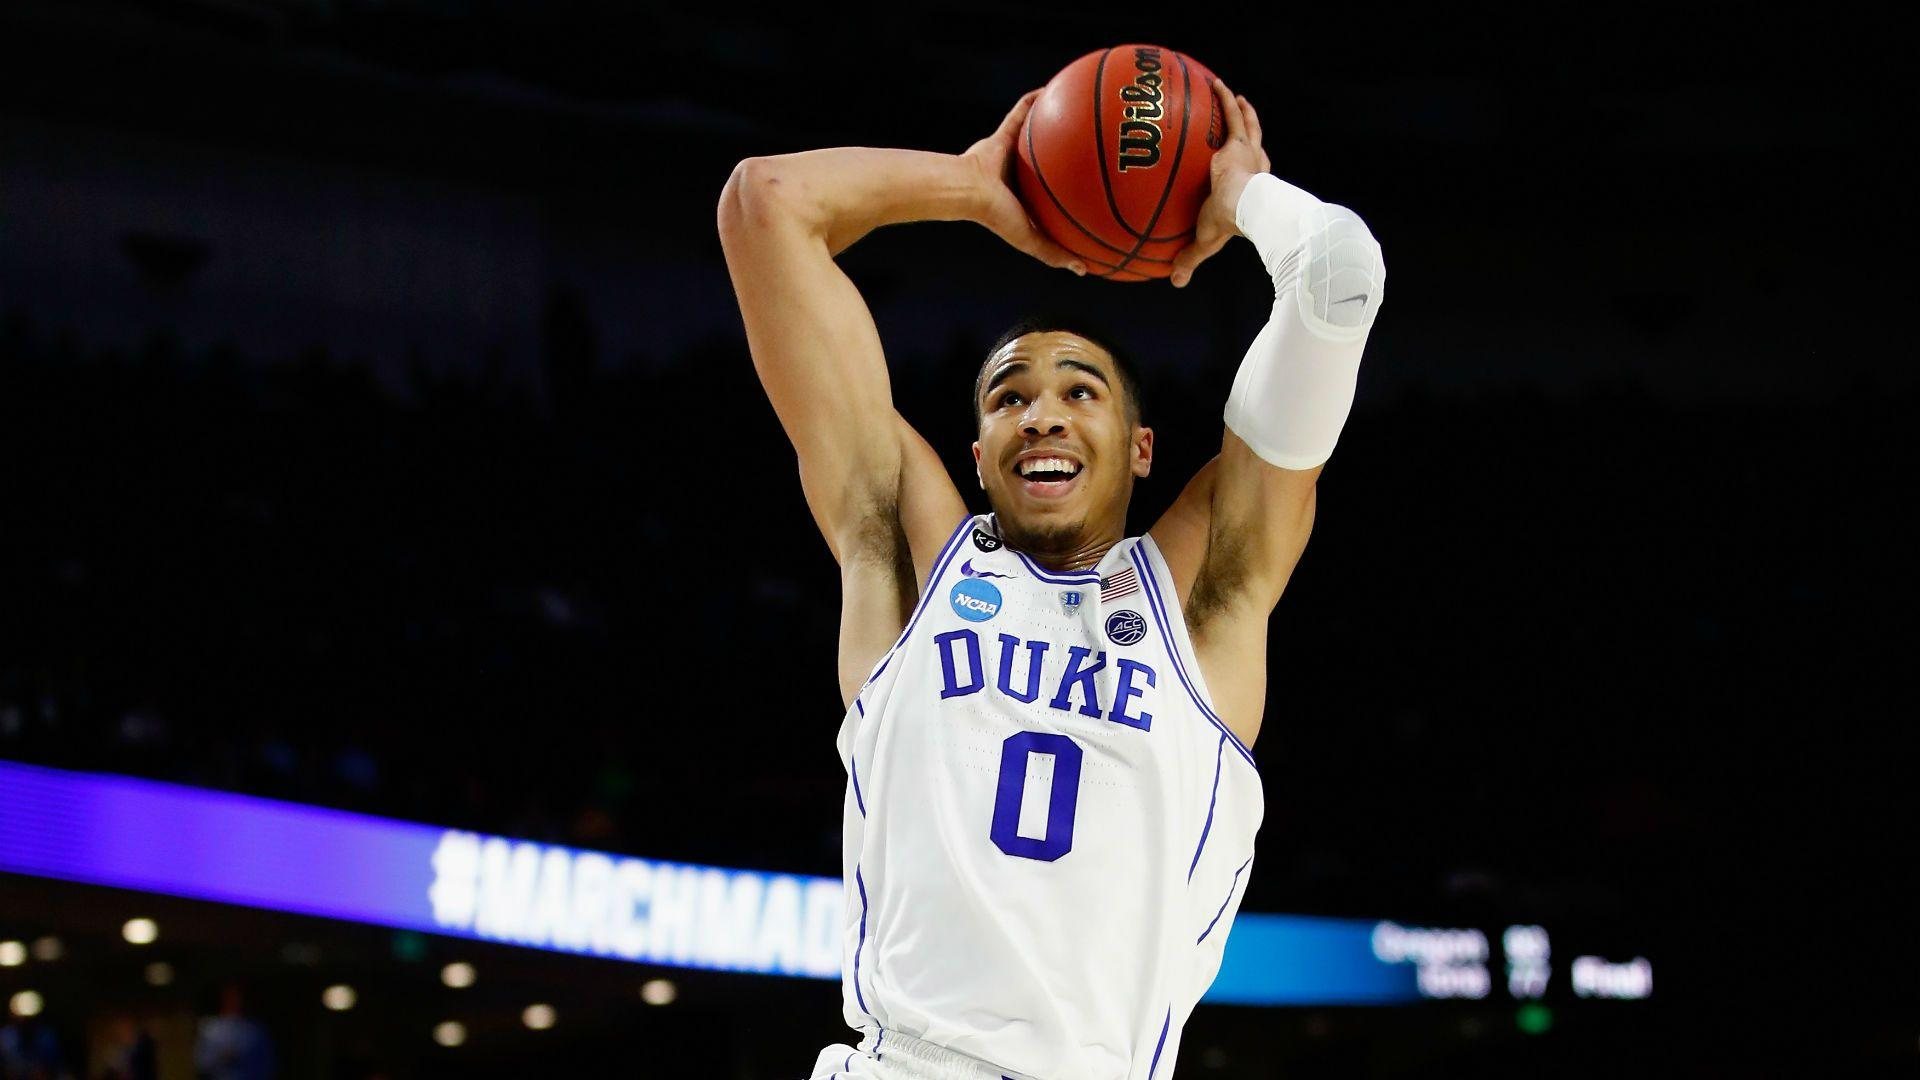 NBA Draft scouting report: Jayson Tatum takes polished offensive